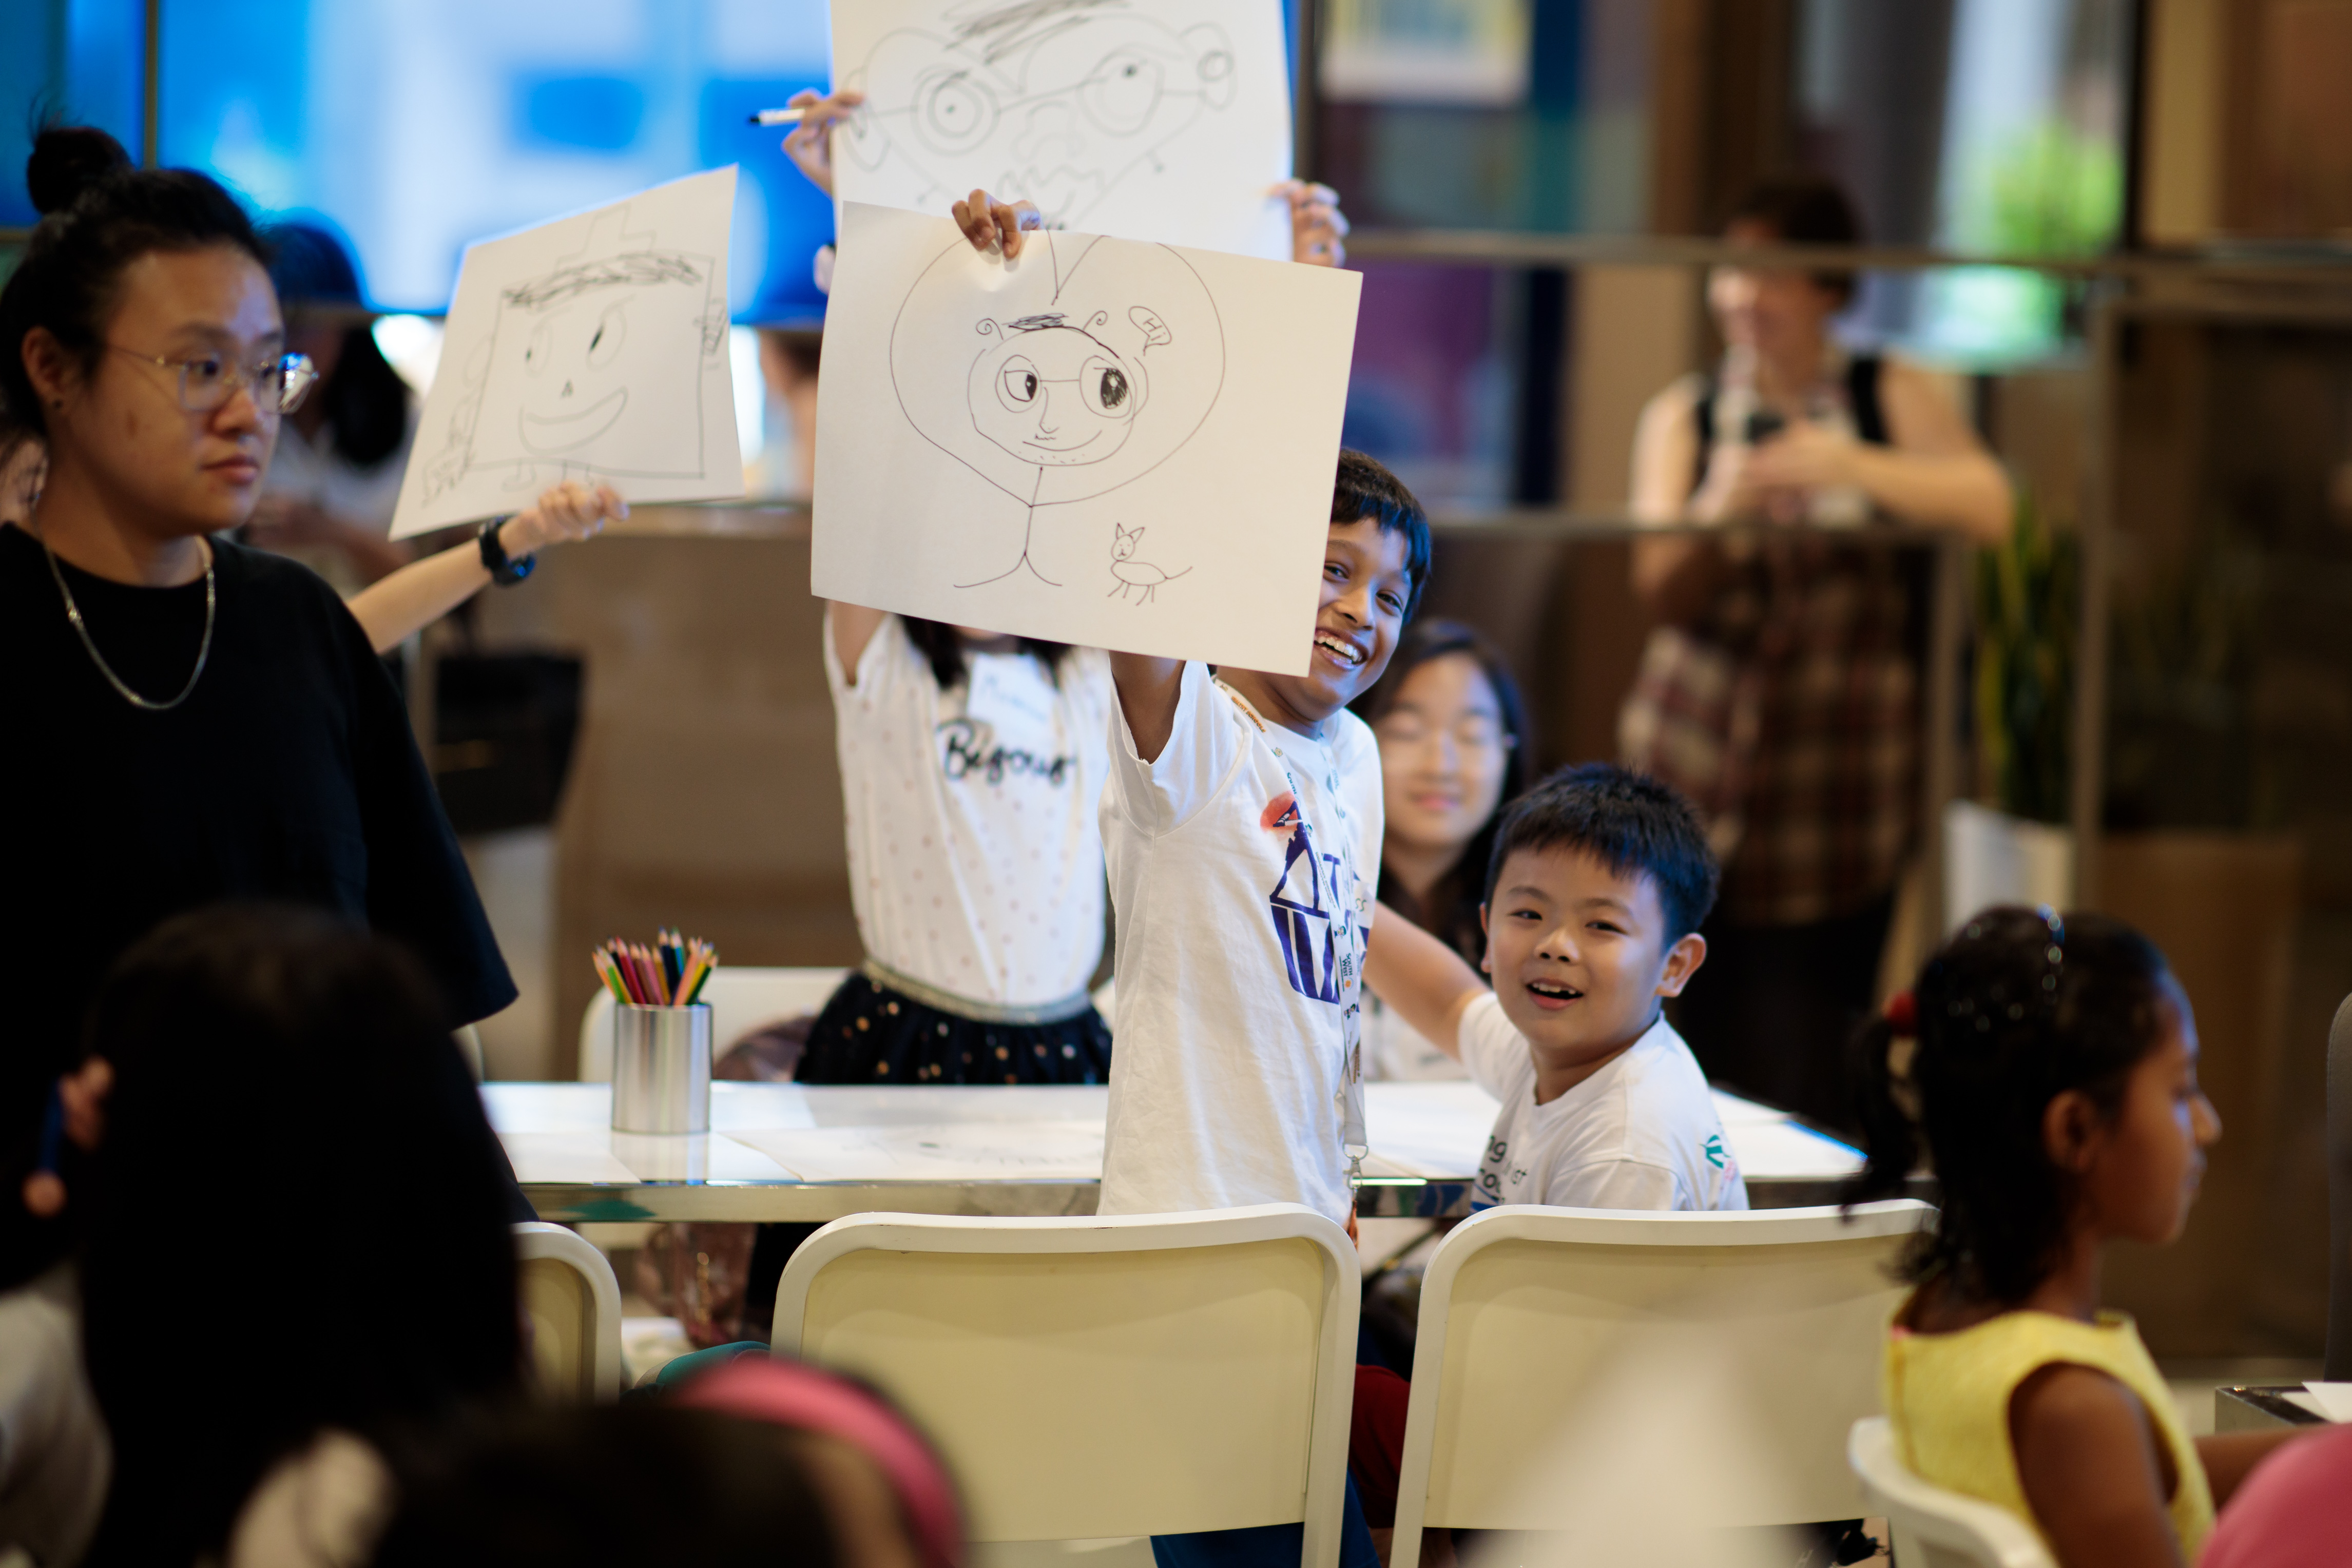 Proudly showing off his drawn creation to the rest of the class